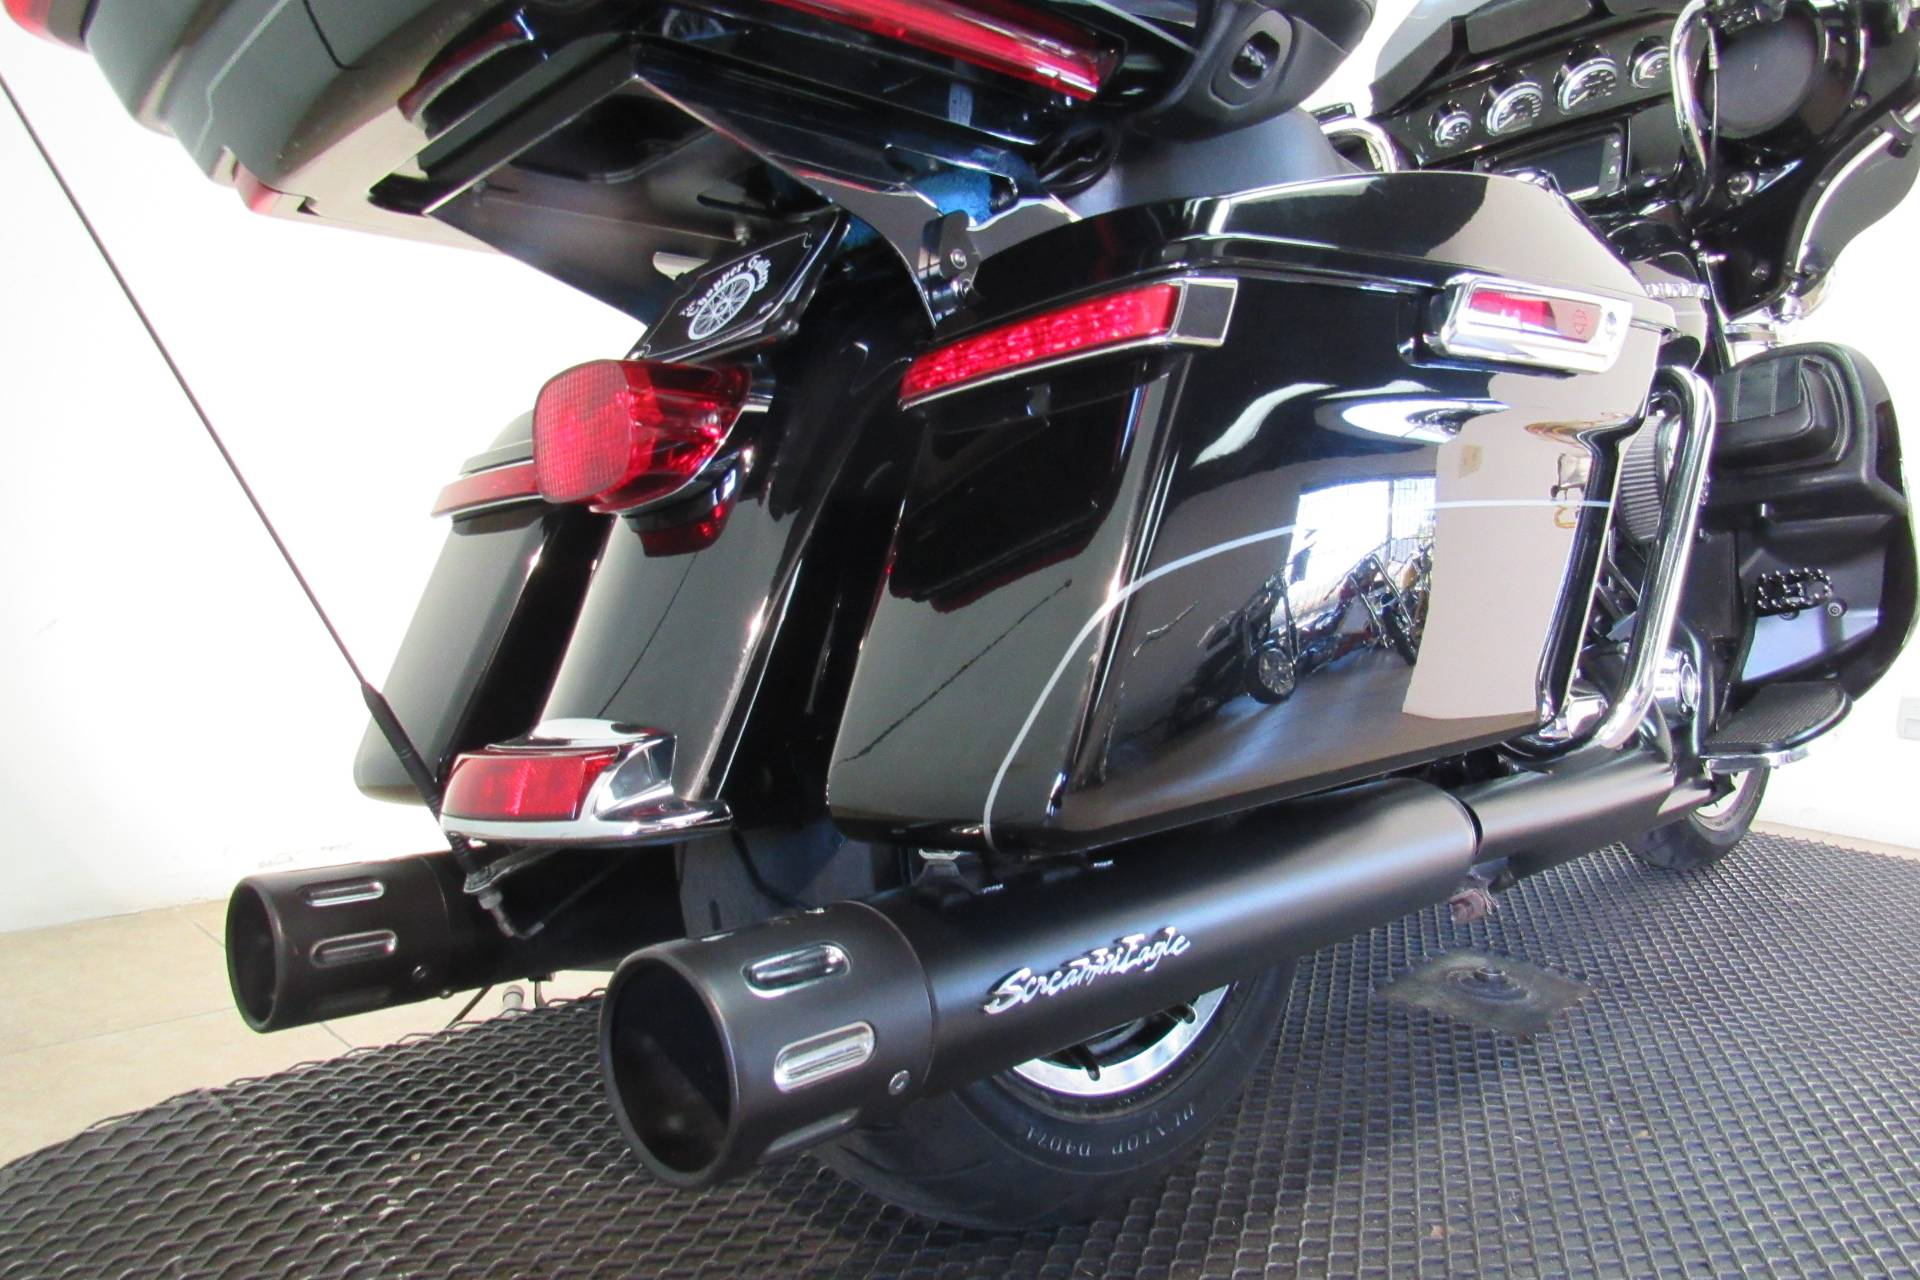 2014 Harley-Davidson Ultra Limited in Temecula, California - Photo 23